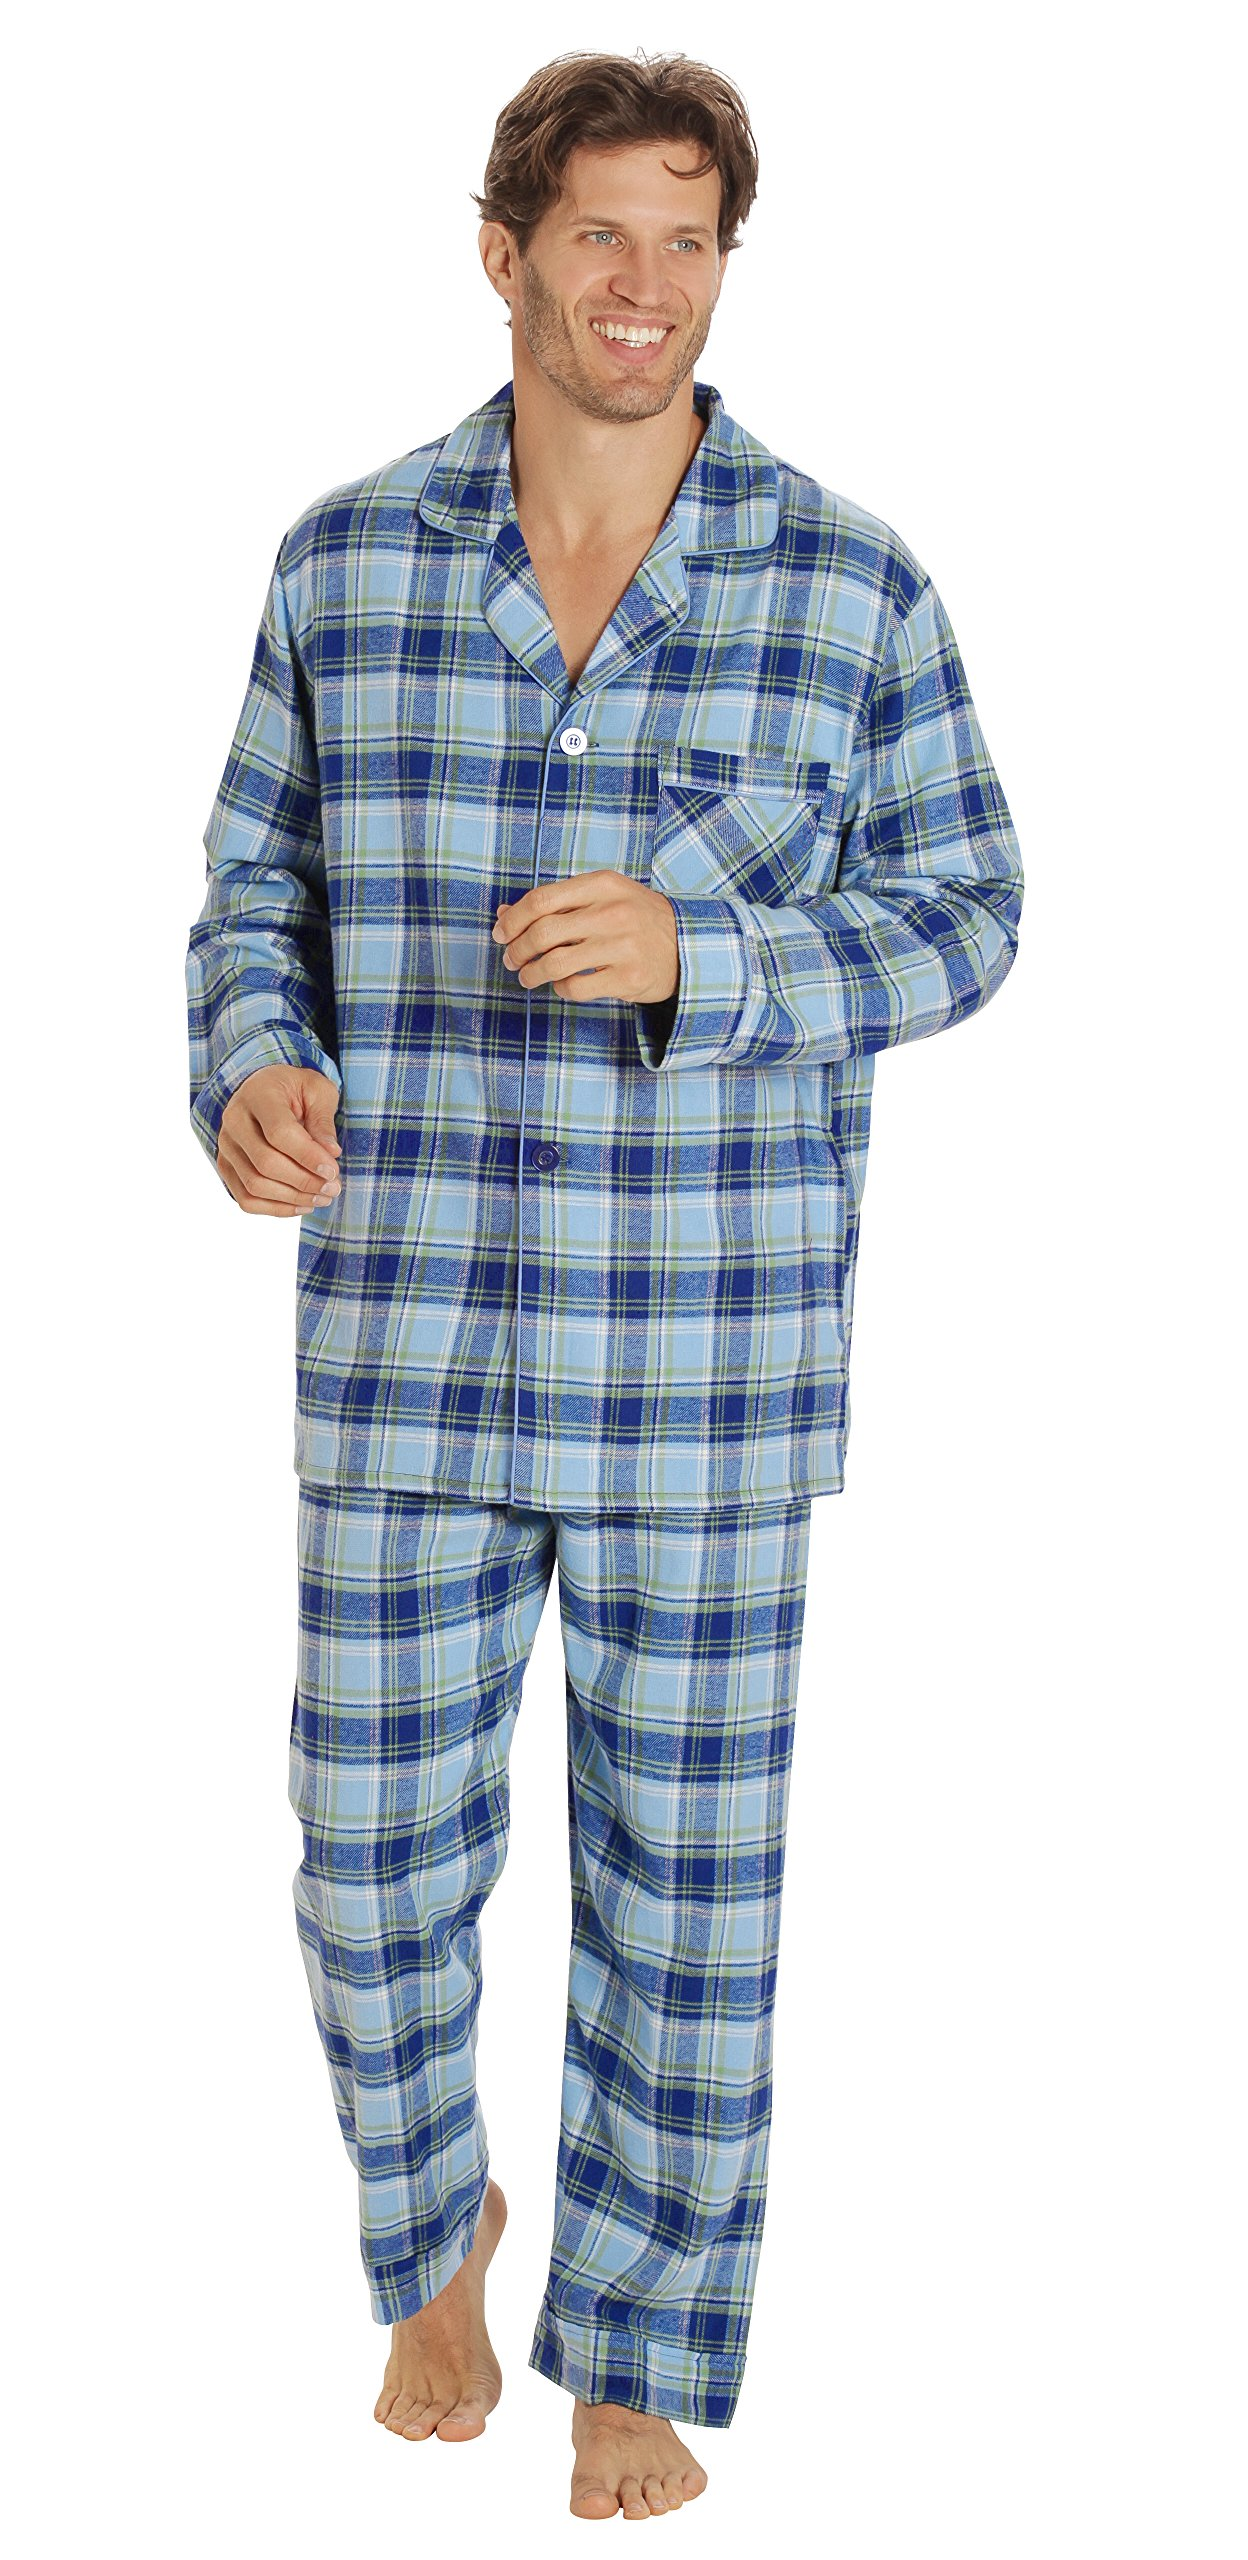 fe29a2f073 Best Rated in Men s Pajama Sets   Helpful Customer Reviews - Amazon.com